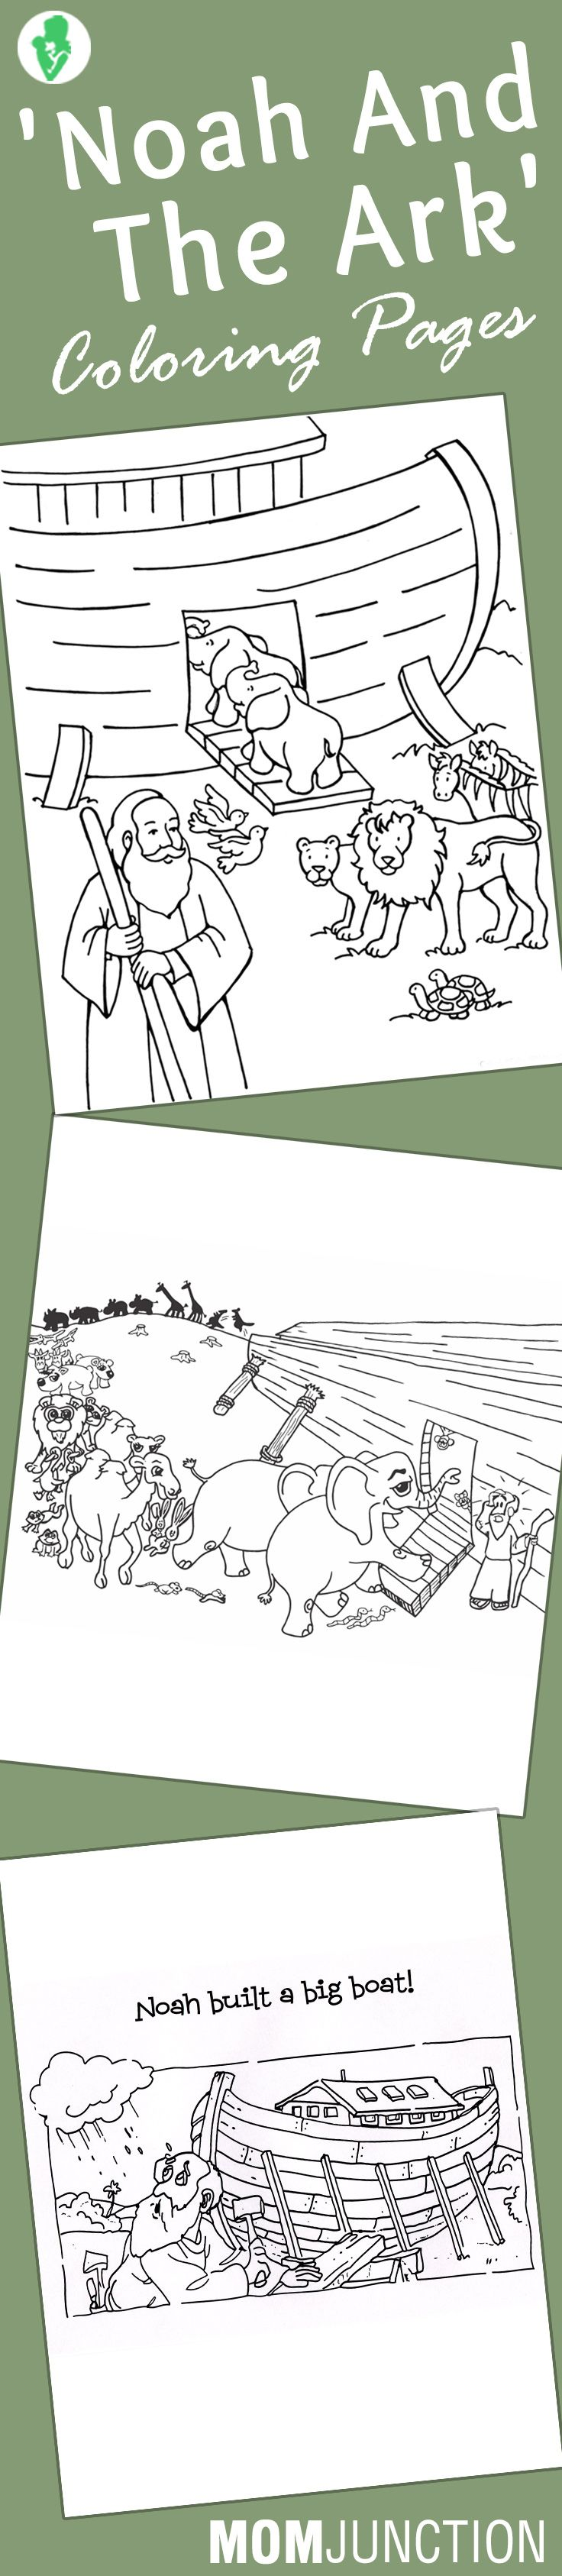 Top 10 39 Noah And The Ark 39 Coloring